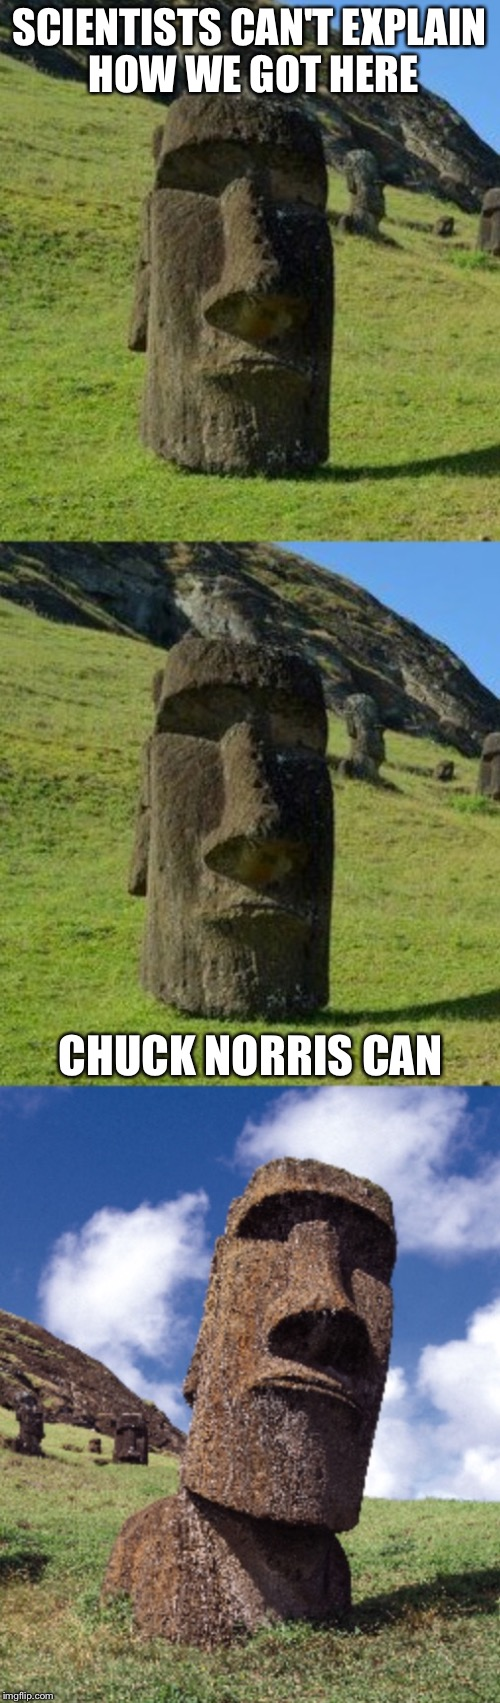 Bad Pun Moai | SCIENTISTS CAN'T EXPLAIN HOW WE GOT HERE CHUCK NORRIS CAN | image tagged in bad pun moai,memes,chuck norris week | made w/ Imgflip meme maker